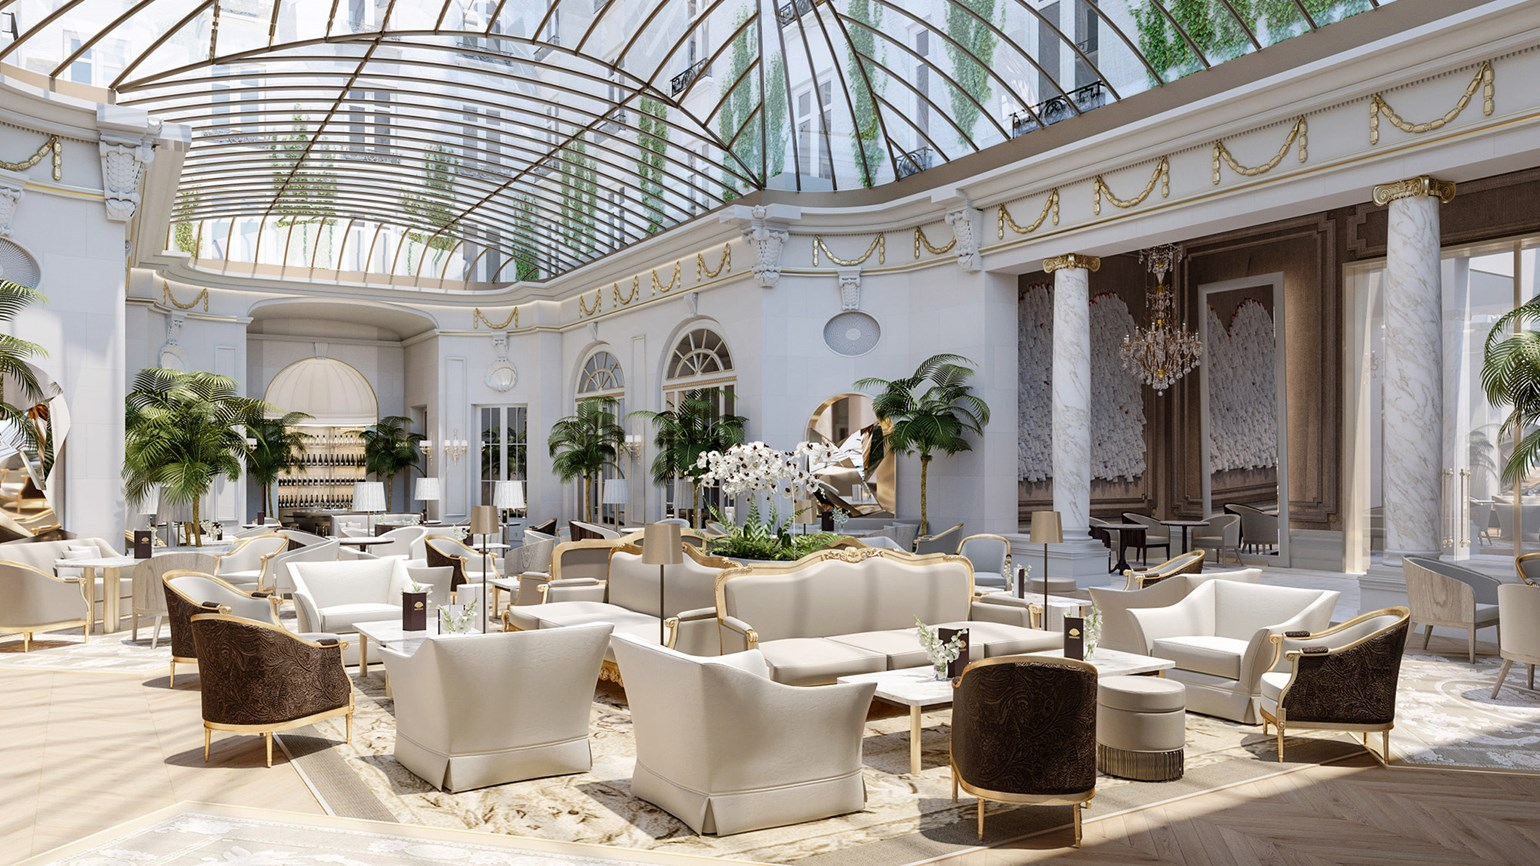 Madrid's Ritz to reopen in summer